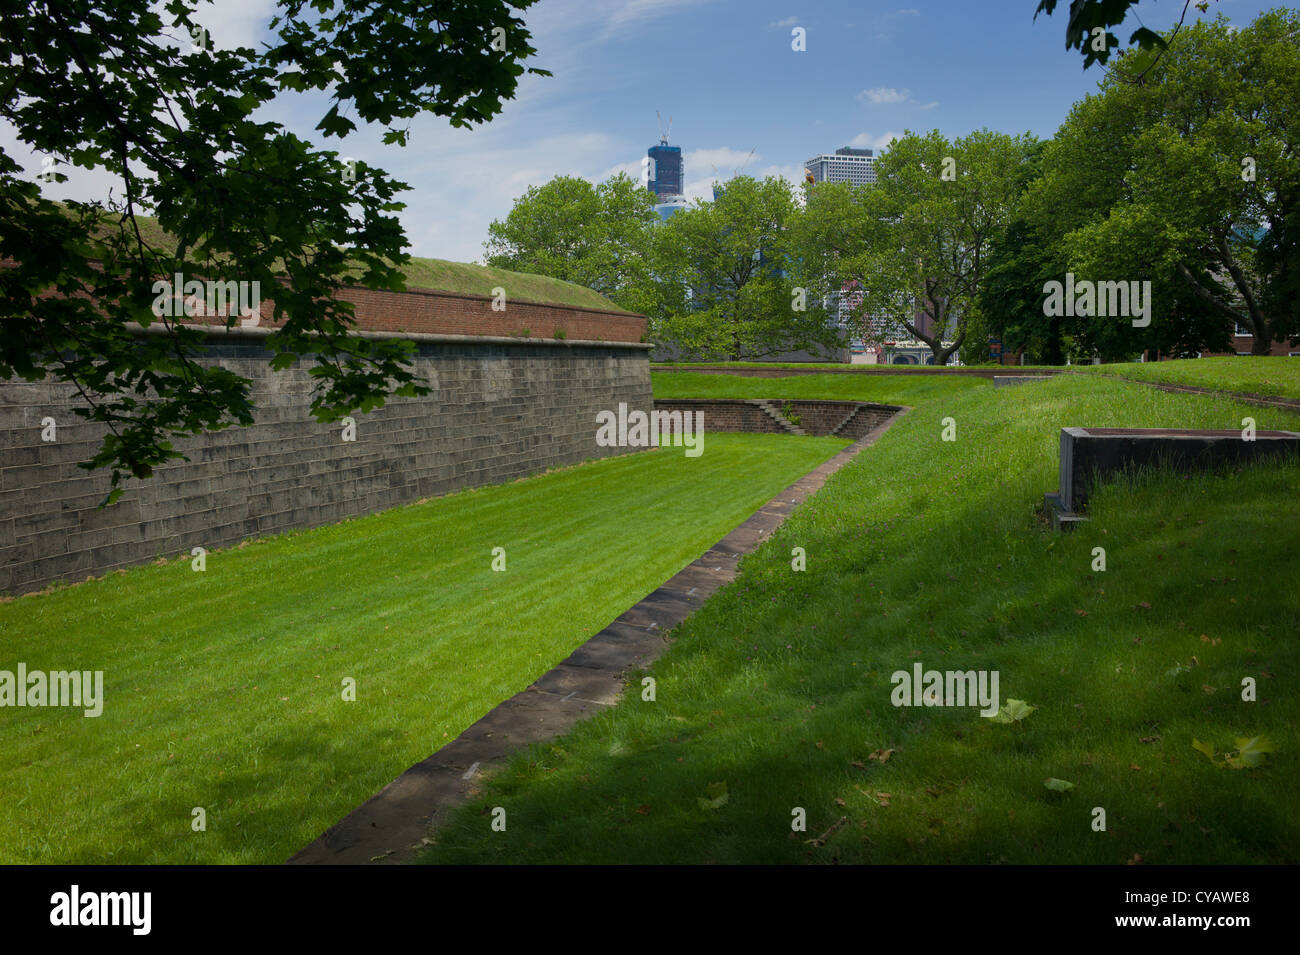 FORTIFICATIONS GOVERNOR'S ISLAND NEW YORK CITY - Stock Image